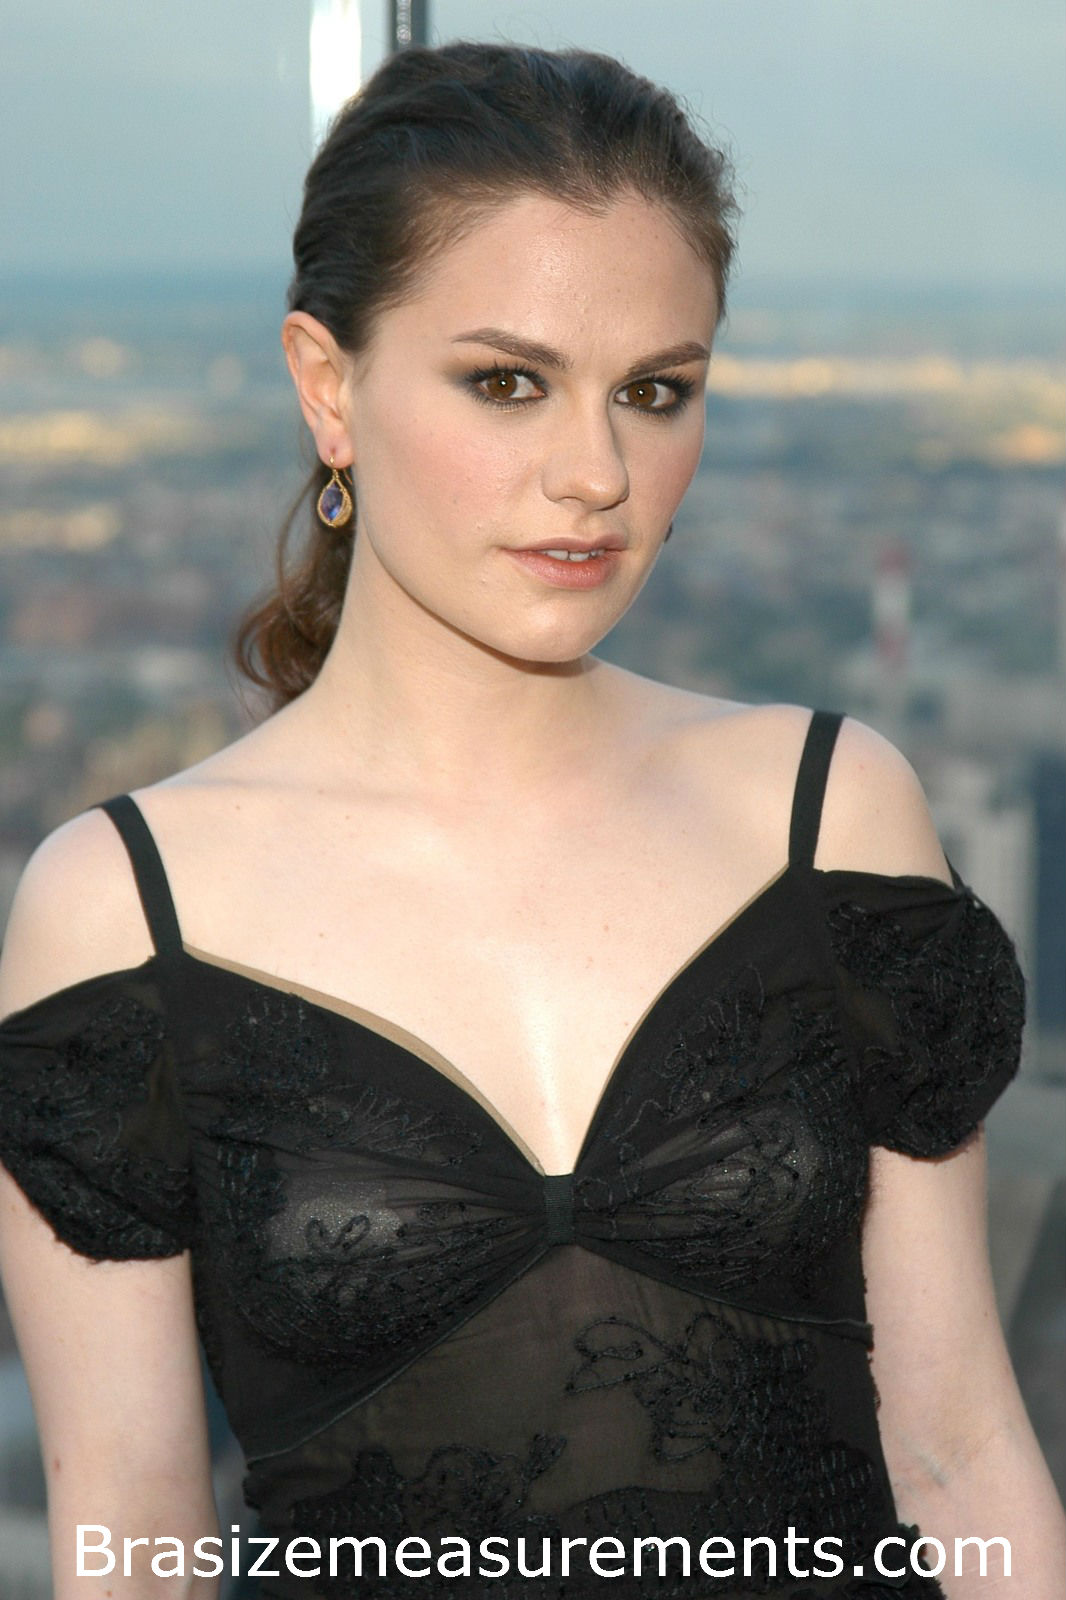 Anna Paquin Body Measurements and Net Worth - Celebrity ... Anna Paquin